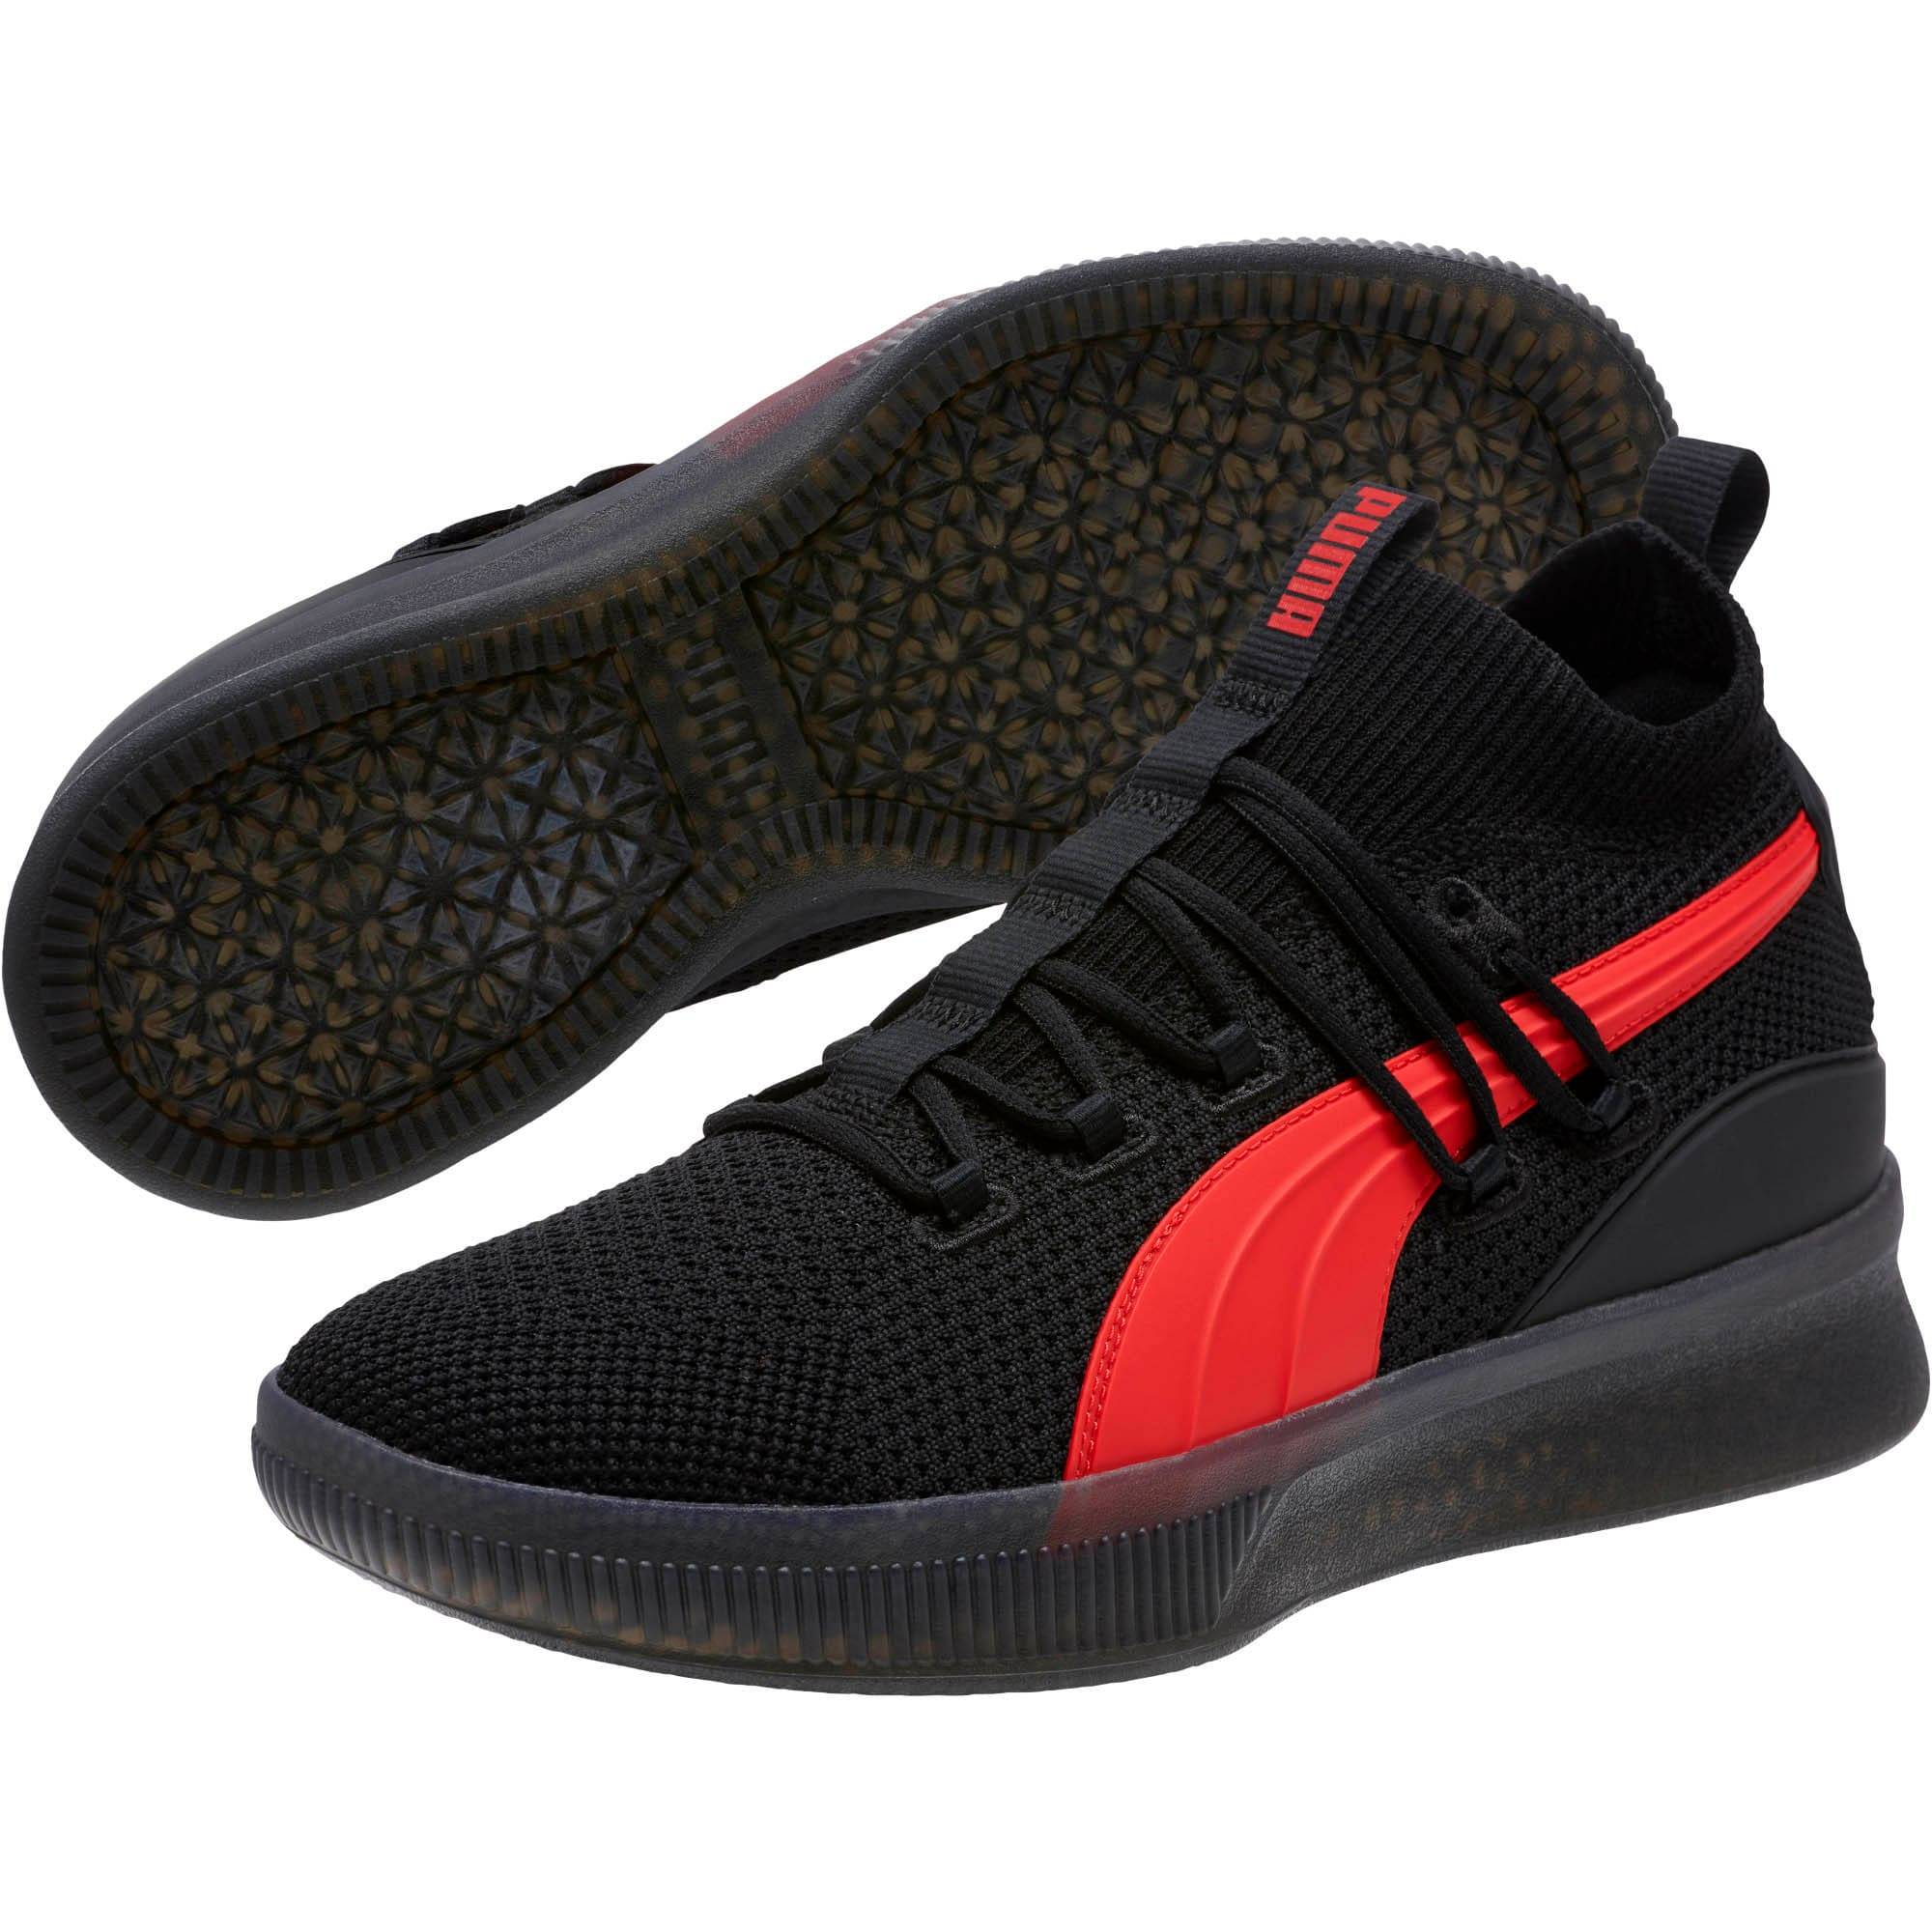 Thumbnail 2 of Clyde Court Core Basketball Shoes, Puma Black-High Risk Red, medium